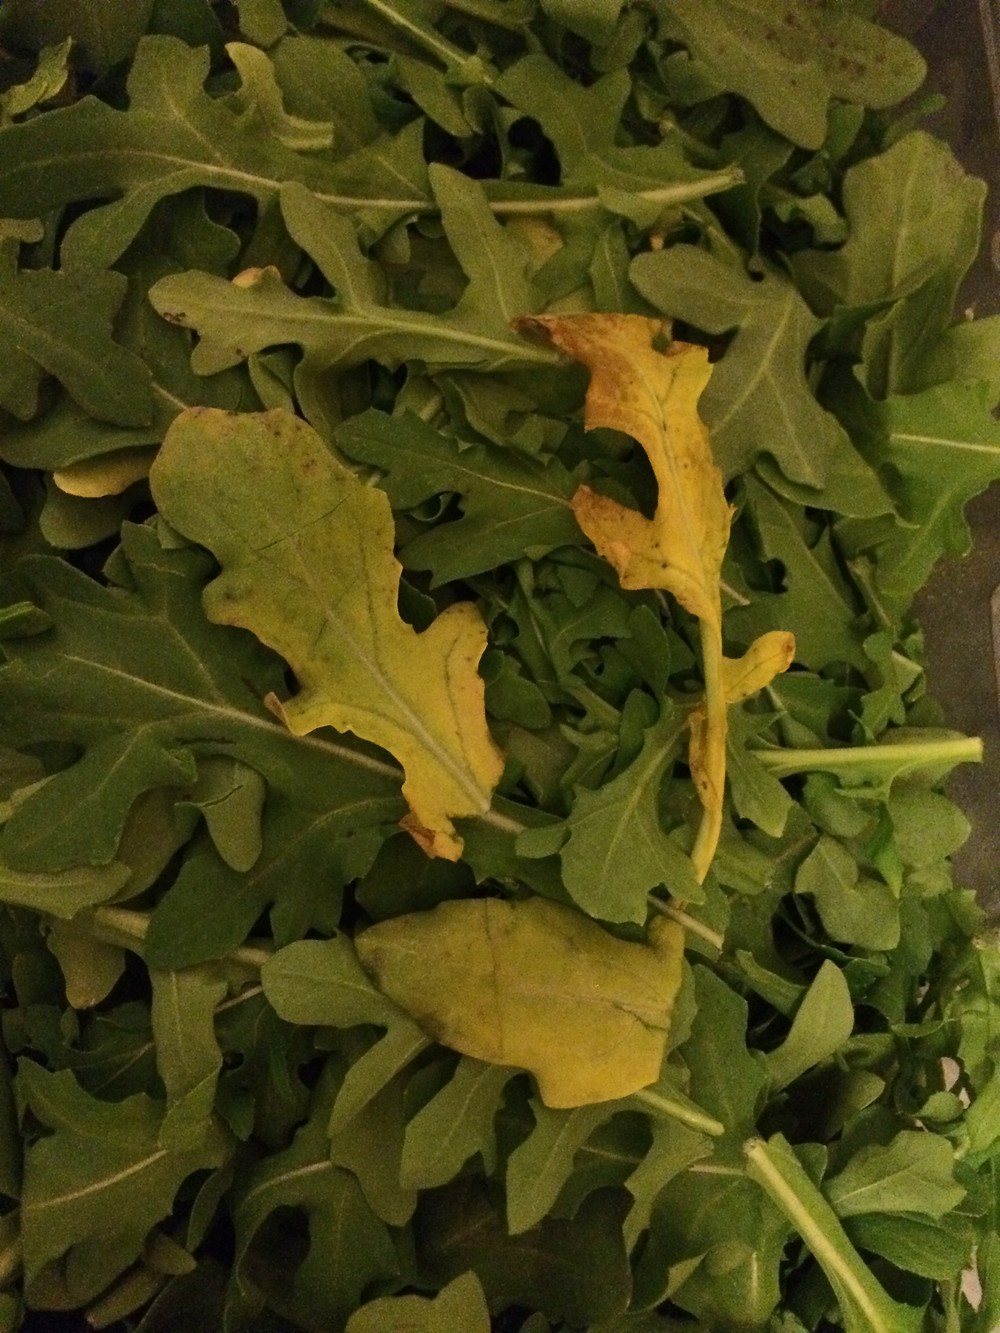 As arugula ages, it turns from green to yellow.